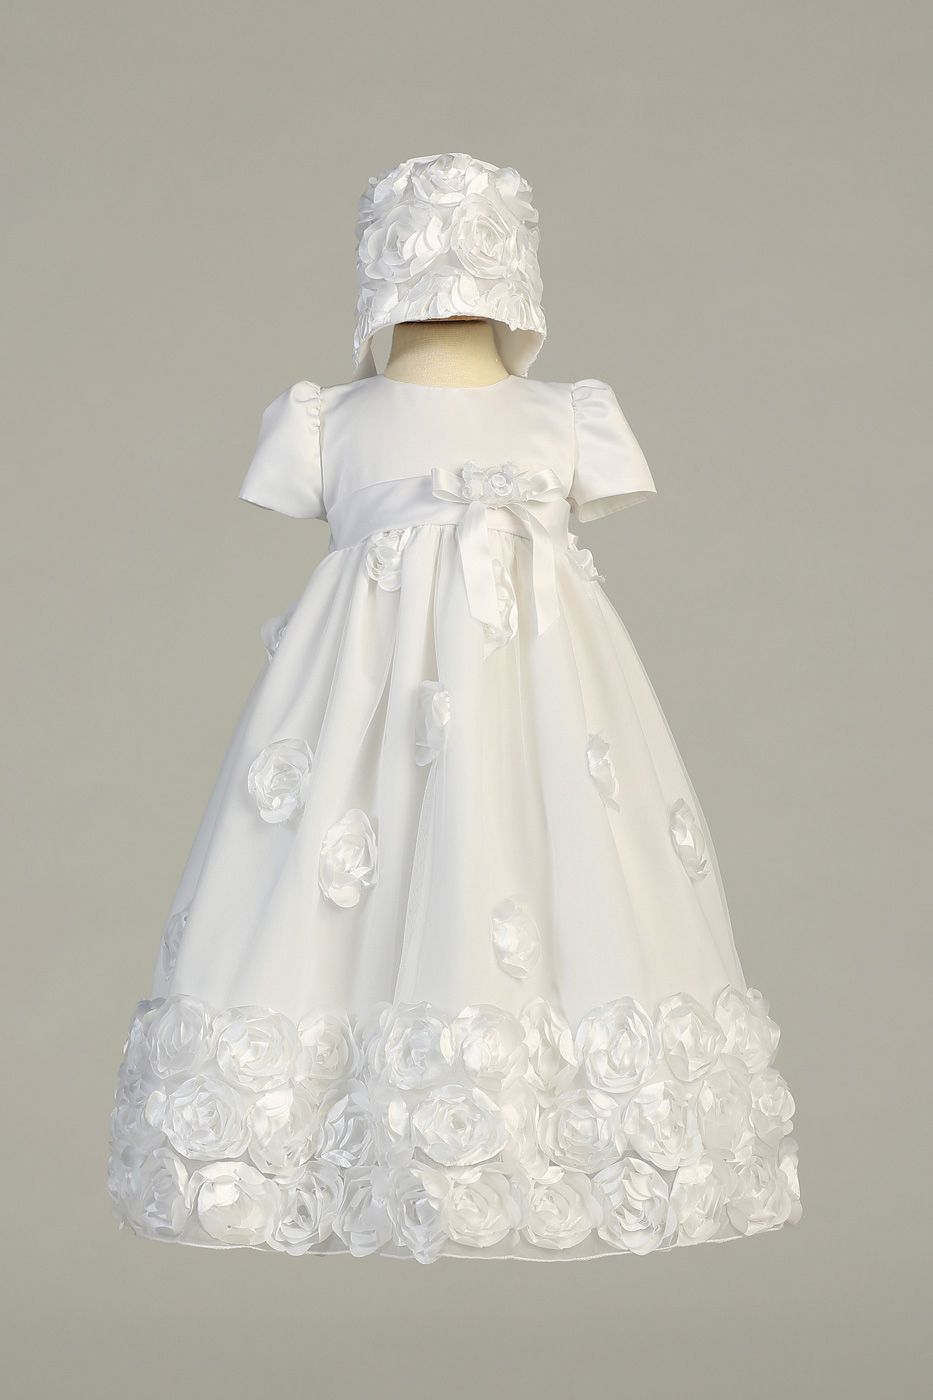 beeba4b9d Christening Gown Clarice by Lito Christening Outfit Girl, Christening Gowns,  Floral Ribbon, Boys